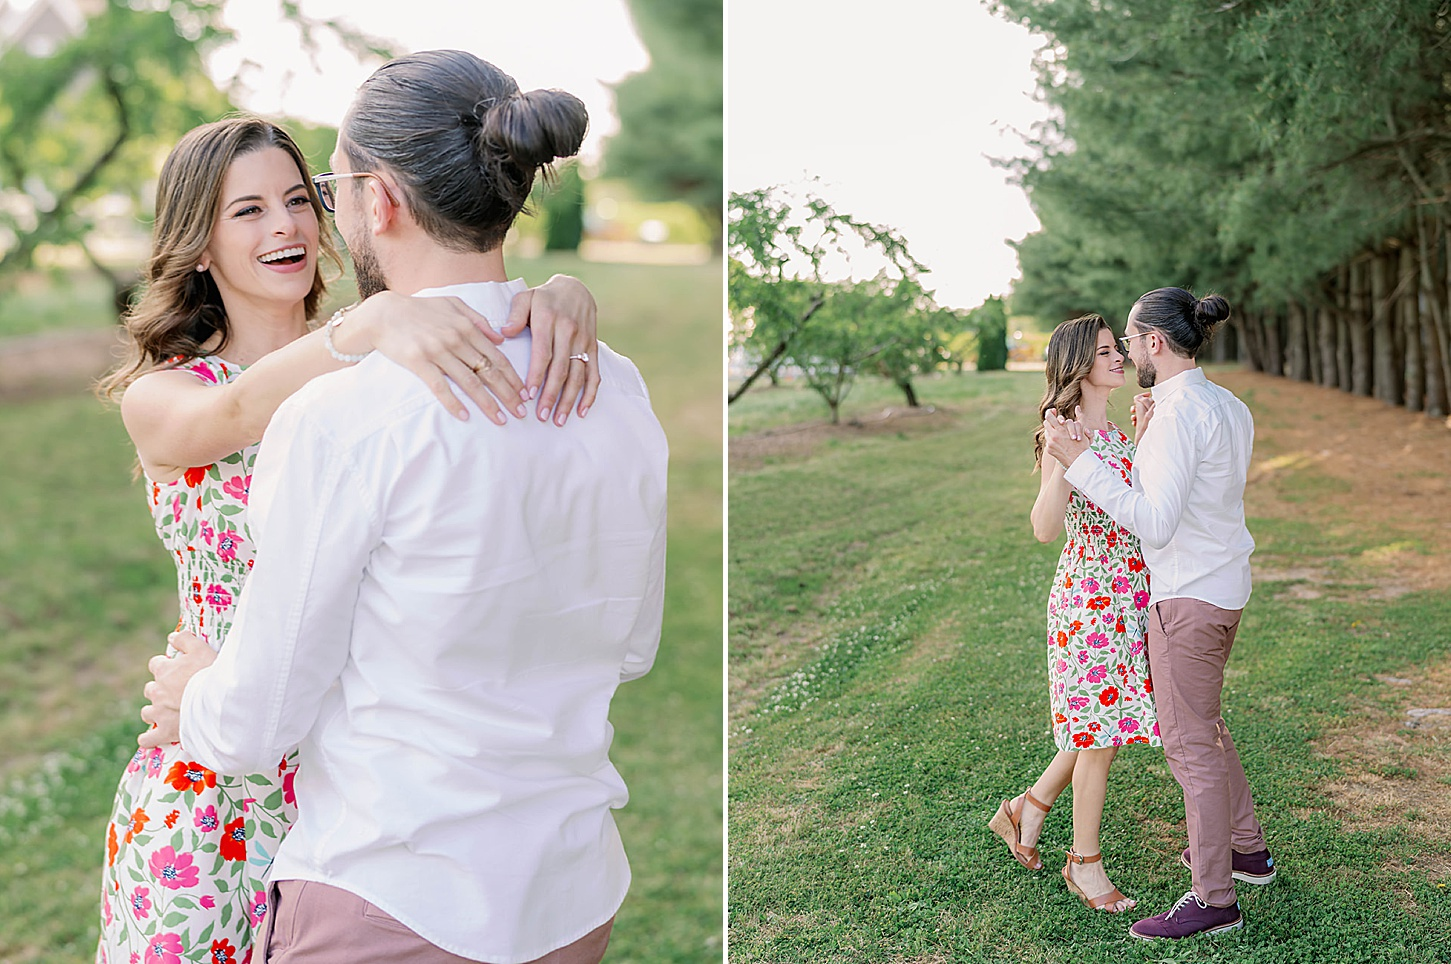 Bast Brothers Garden Center Mullica Hill NJ Engagement Photography by Magdalena Studios 0004